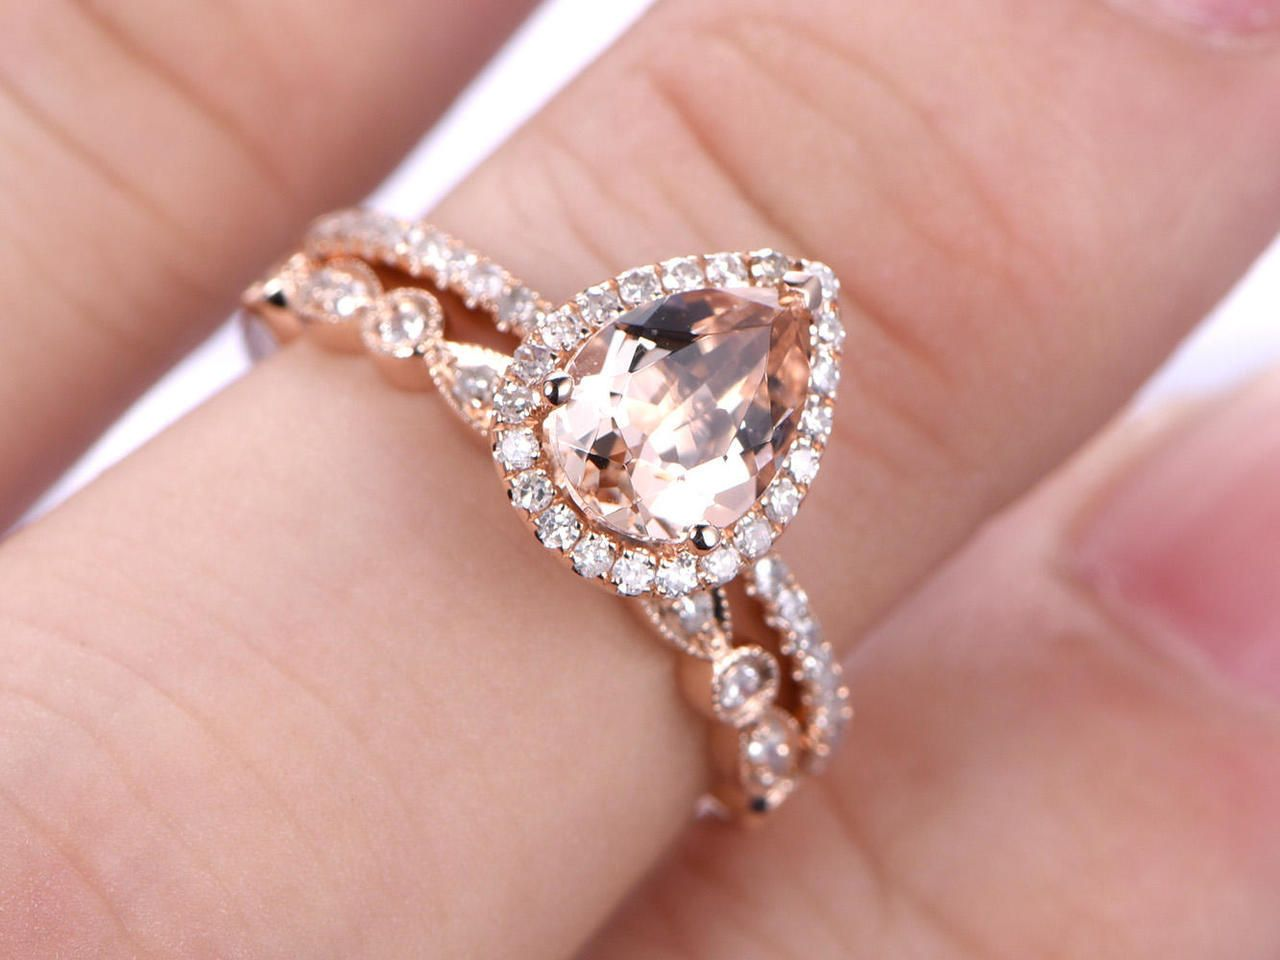 2pcs Wedding Ring Set,Morganite Engagement ring,6x8mm pear 14k Rose ...